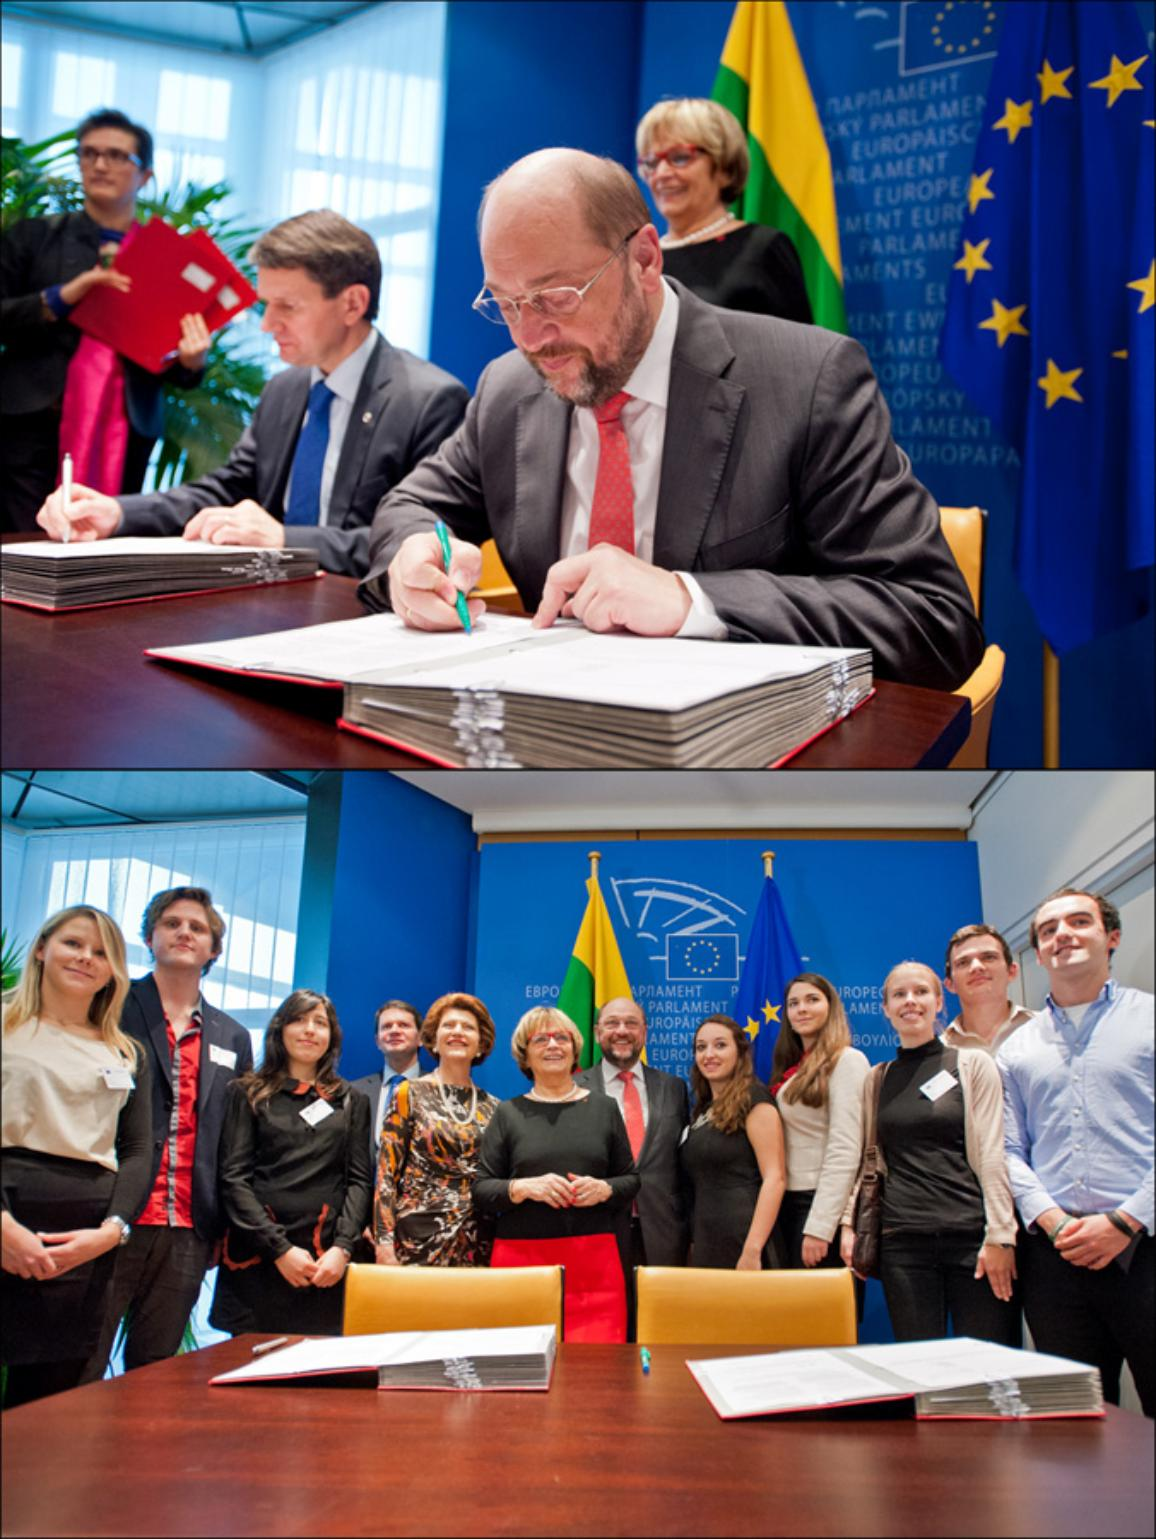 The Erasmus program signed by the #EP President Martin Schulz and Council rappresentative Vytautas Leskevicius